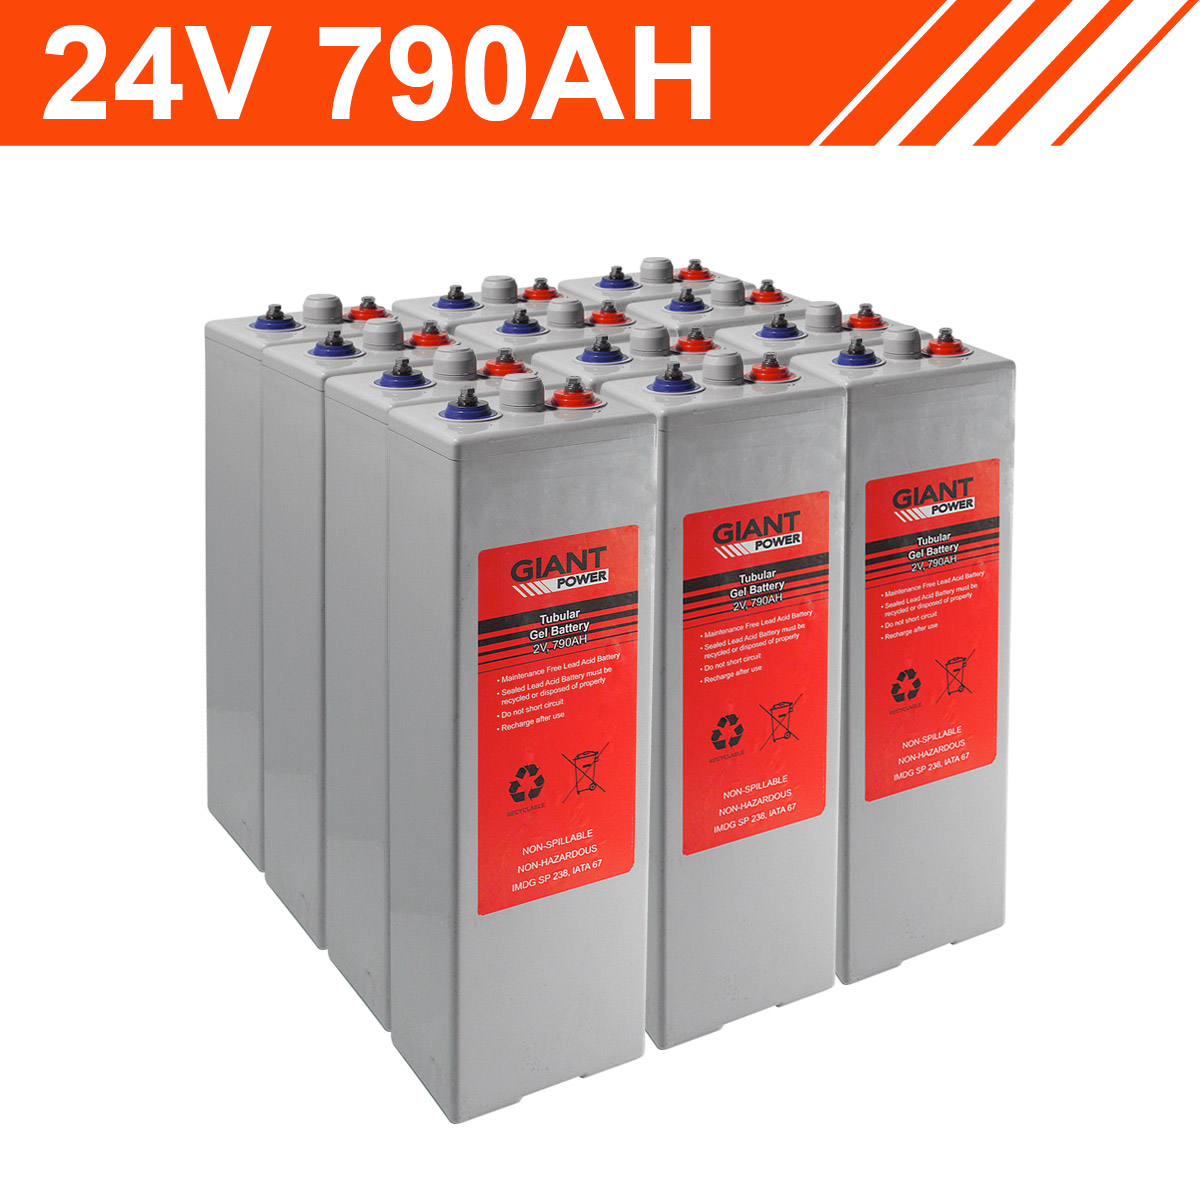 24v 790ah Tubular Gel Battery Bank